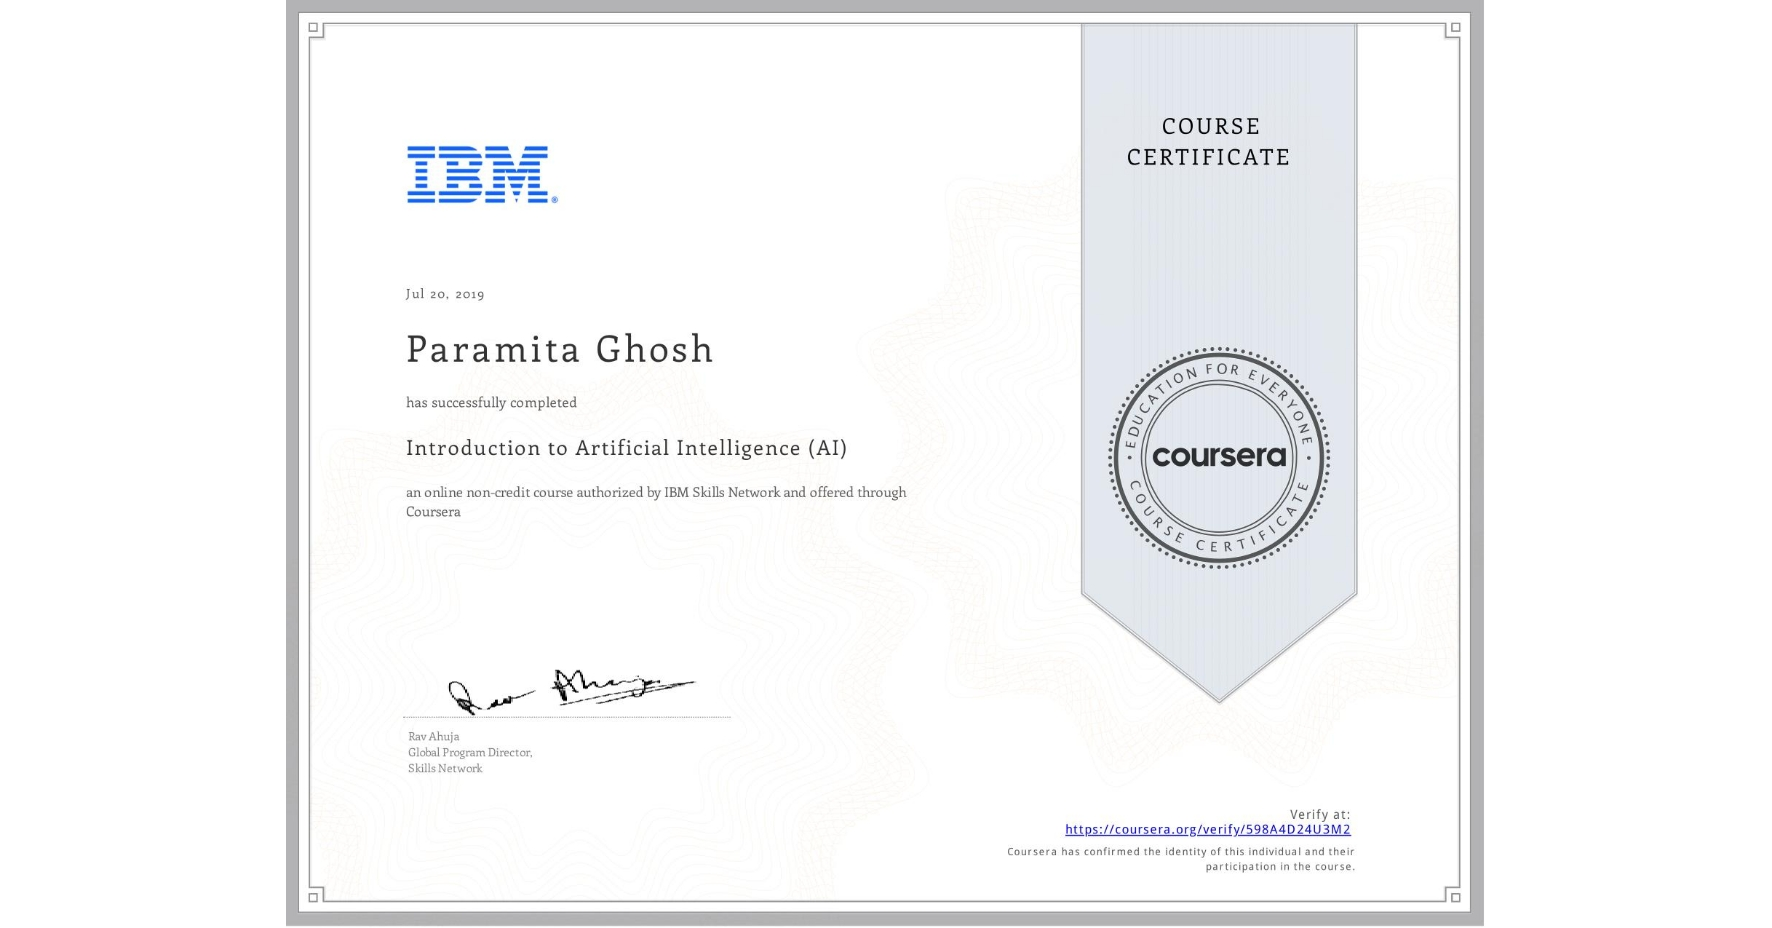 View certificate for Paramita Ghosh, Introduction to Artificial Intelligence (AI), an online non-credit course authorized by IBM and offered through Coursera